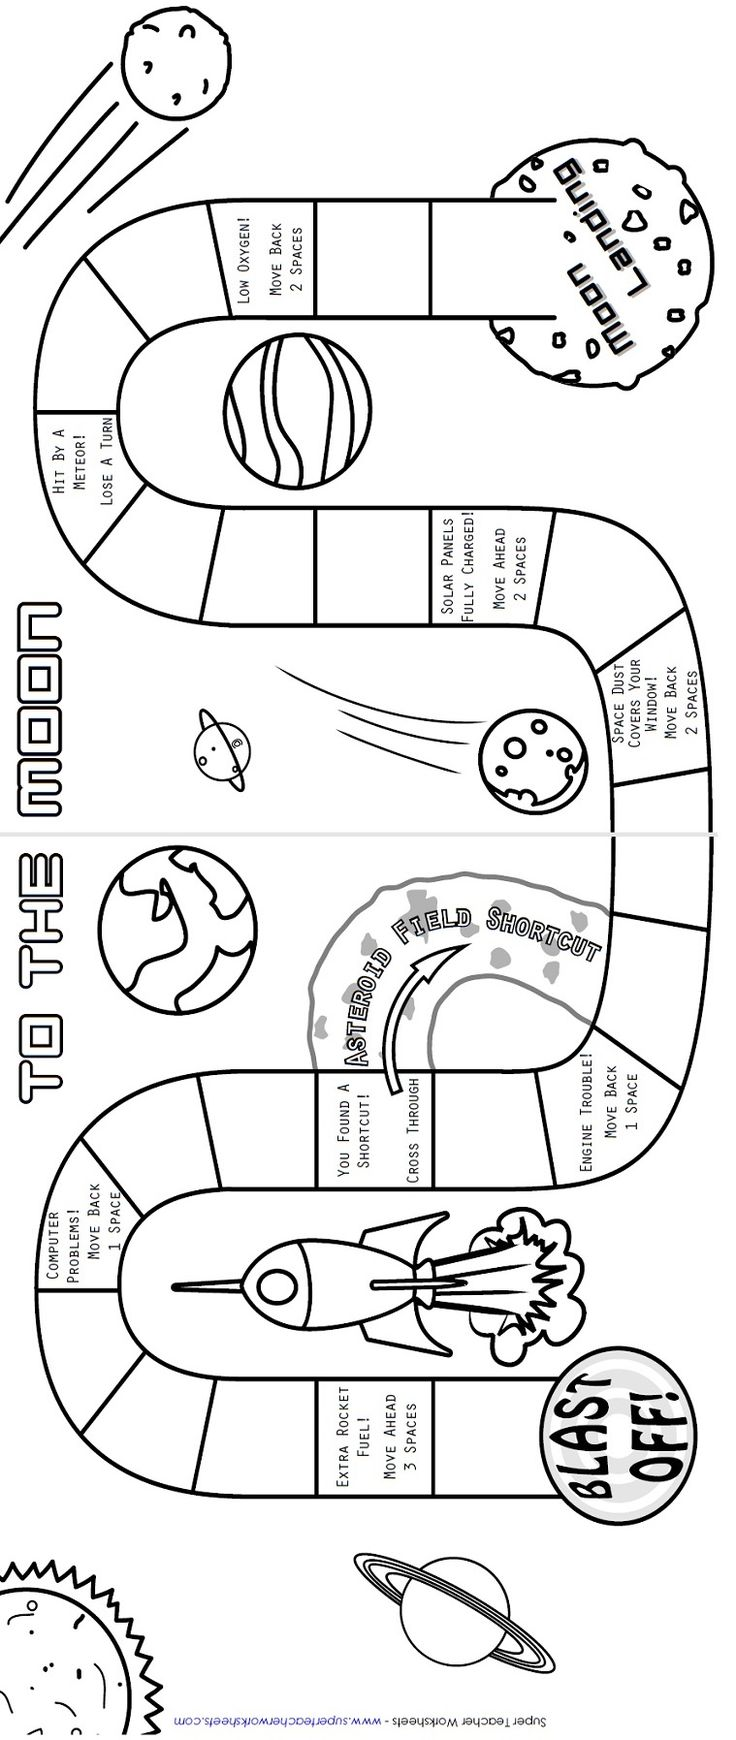 Colouring sheets of the lunar eclipse - Students Will Have A Blast Learning Facts About The Solar System With This Board Game